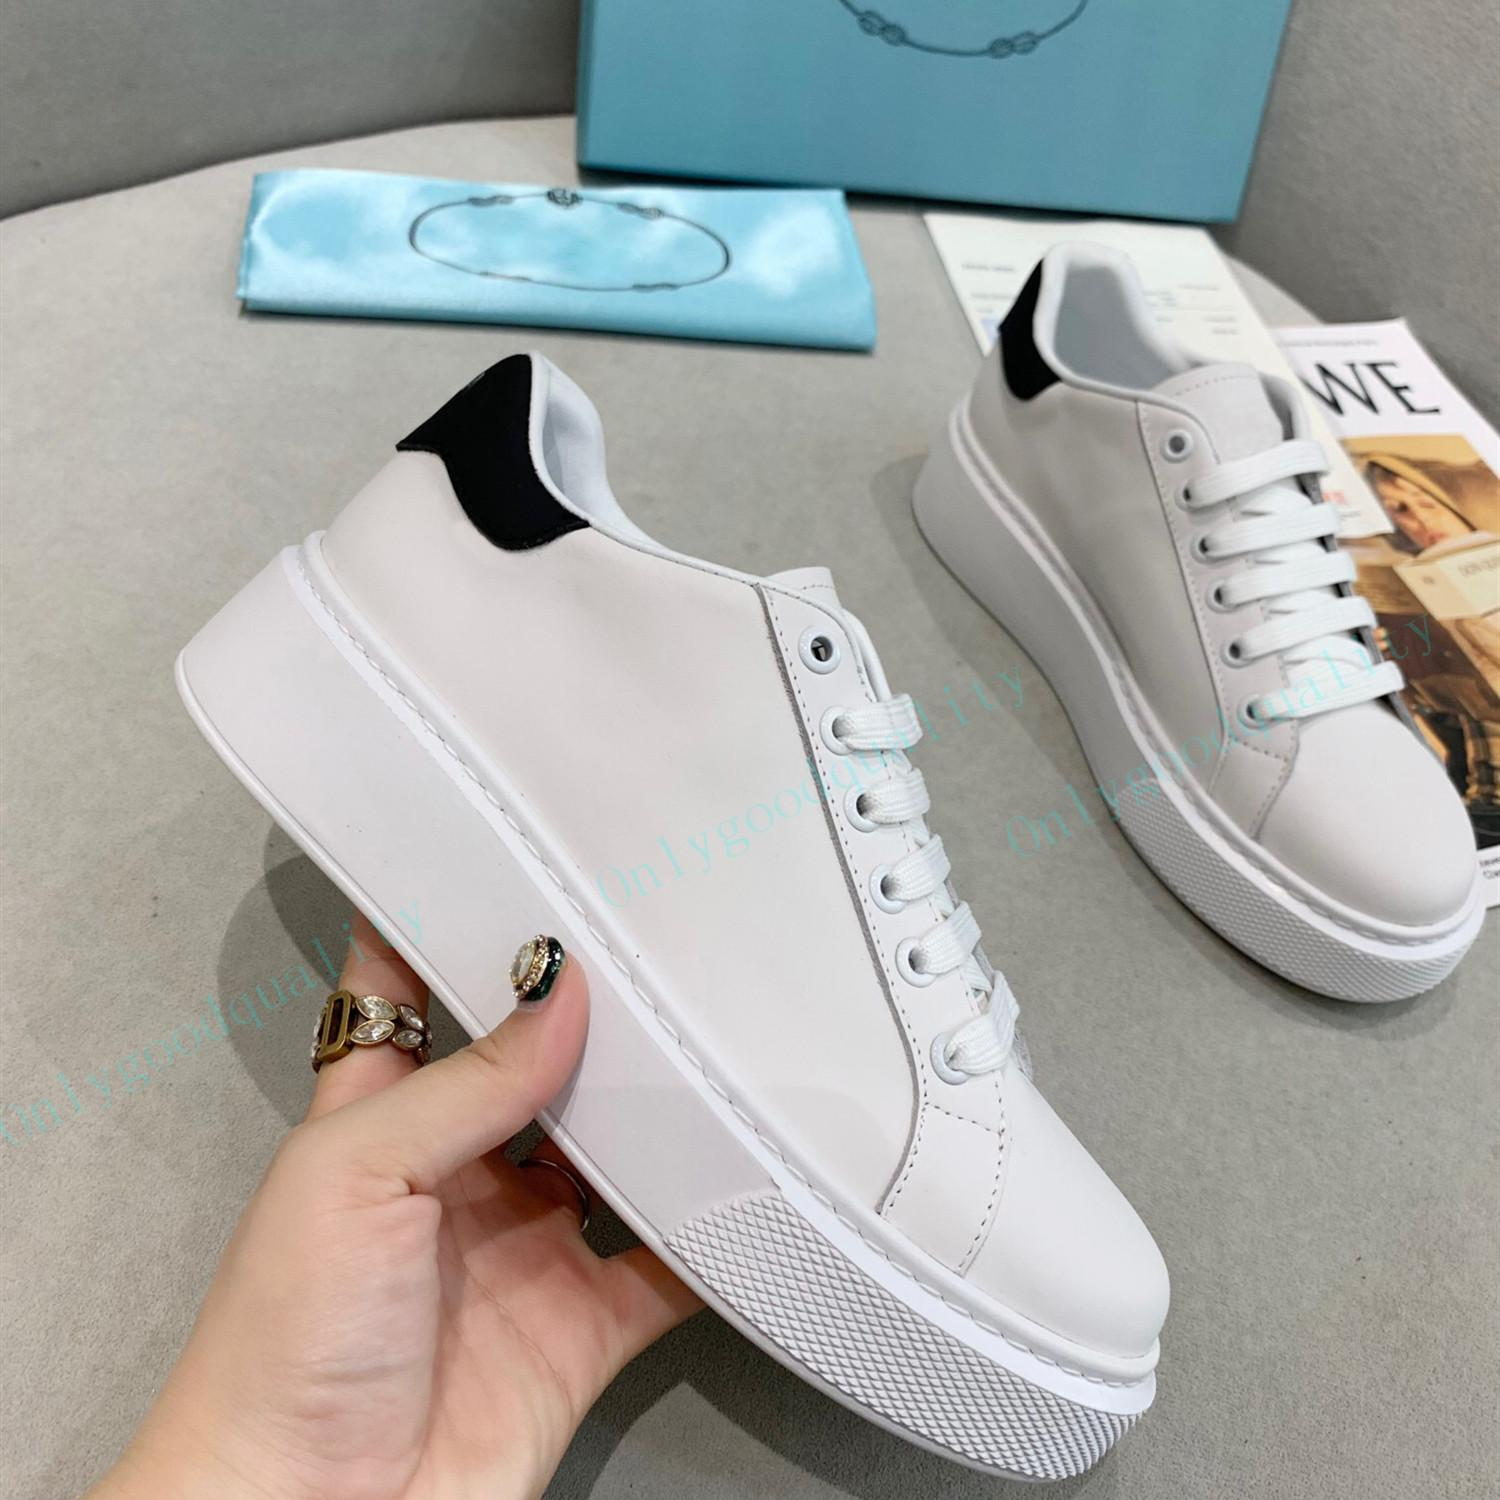 Top Quality Hommes Casual Chaussures Femme Sneaker Femme Chaussures Chaussures Beautiful Plate-forme Sneakers Cuir Couleurs Solides Robe Grande taille 35-45 avec boîte